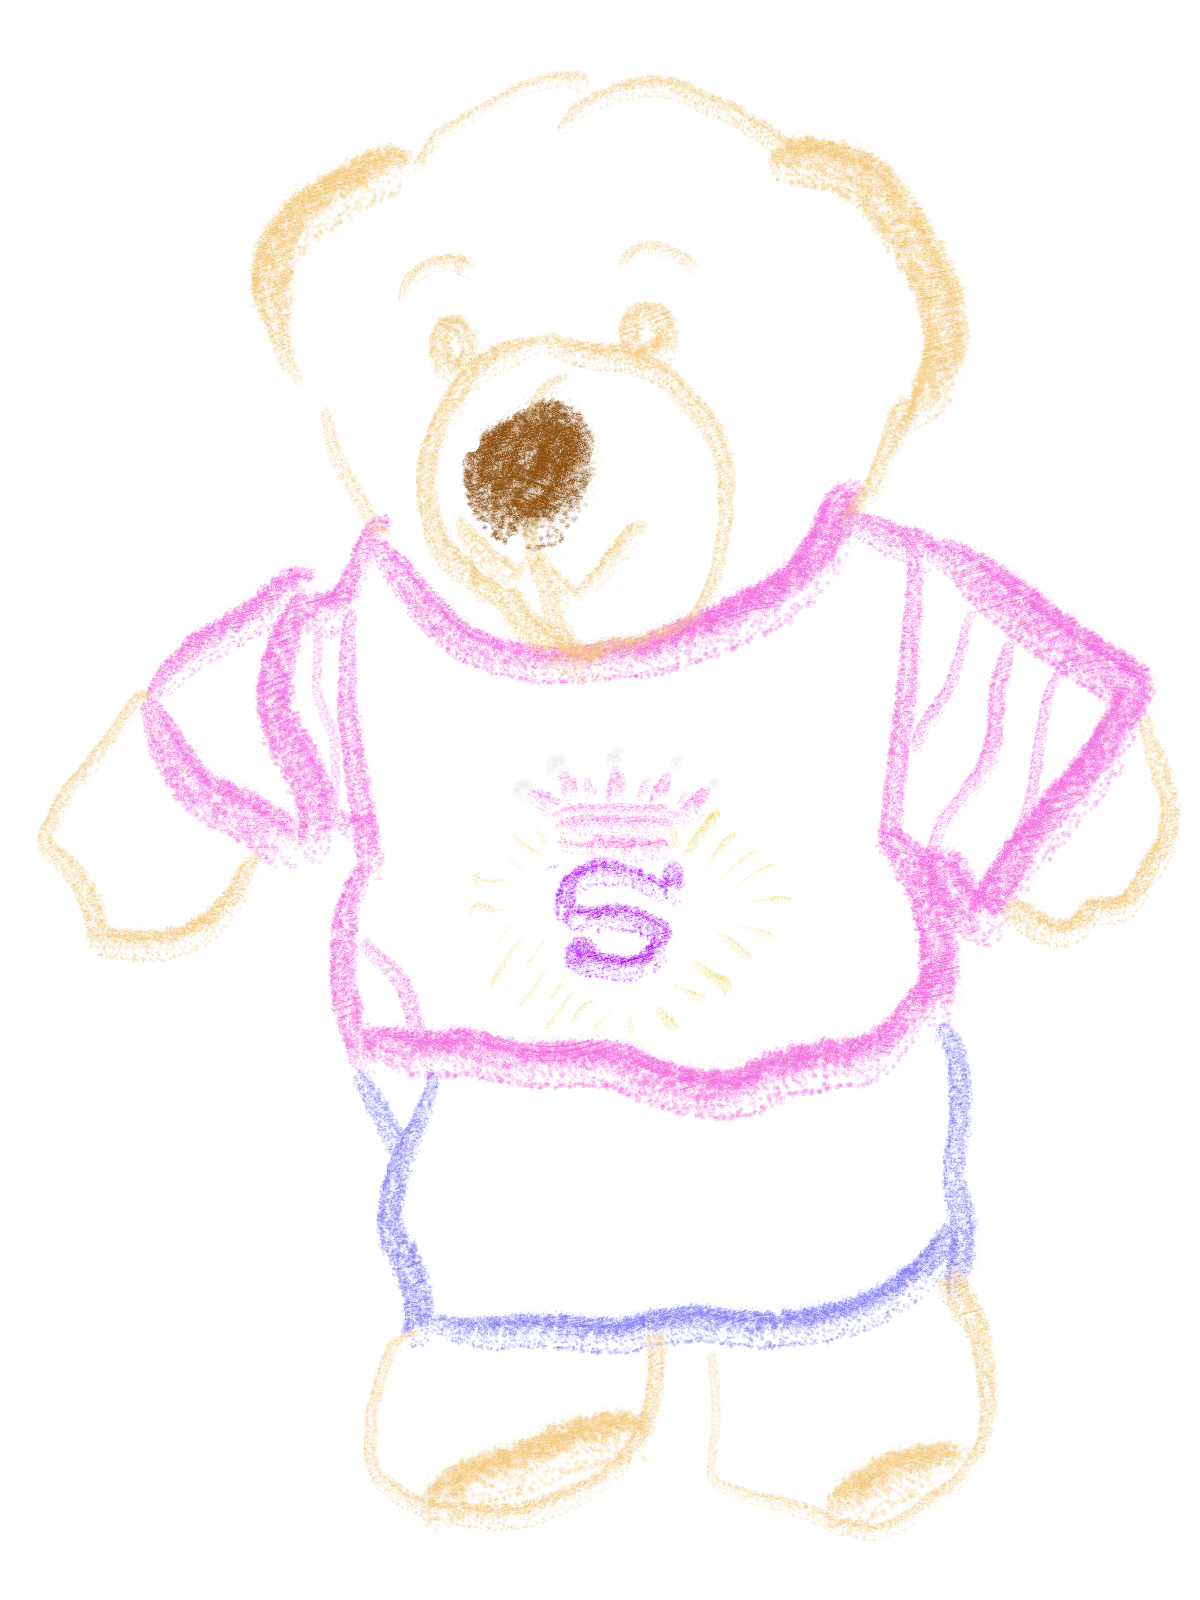 A teddy bear in a pink super-logo shirt and skirt